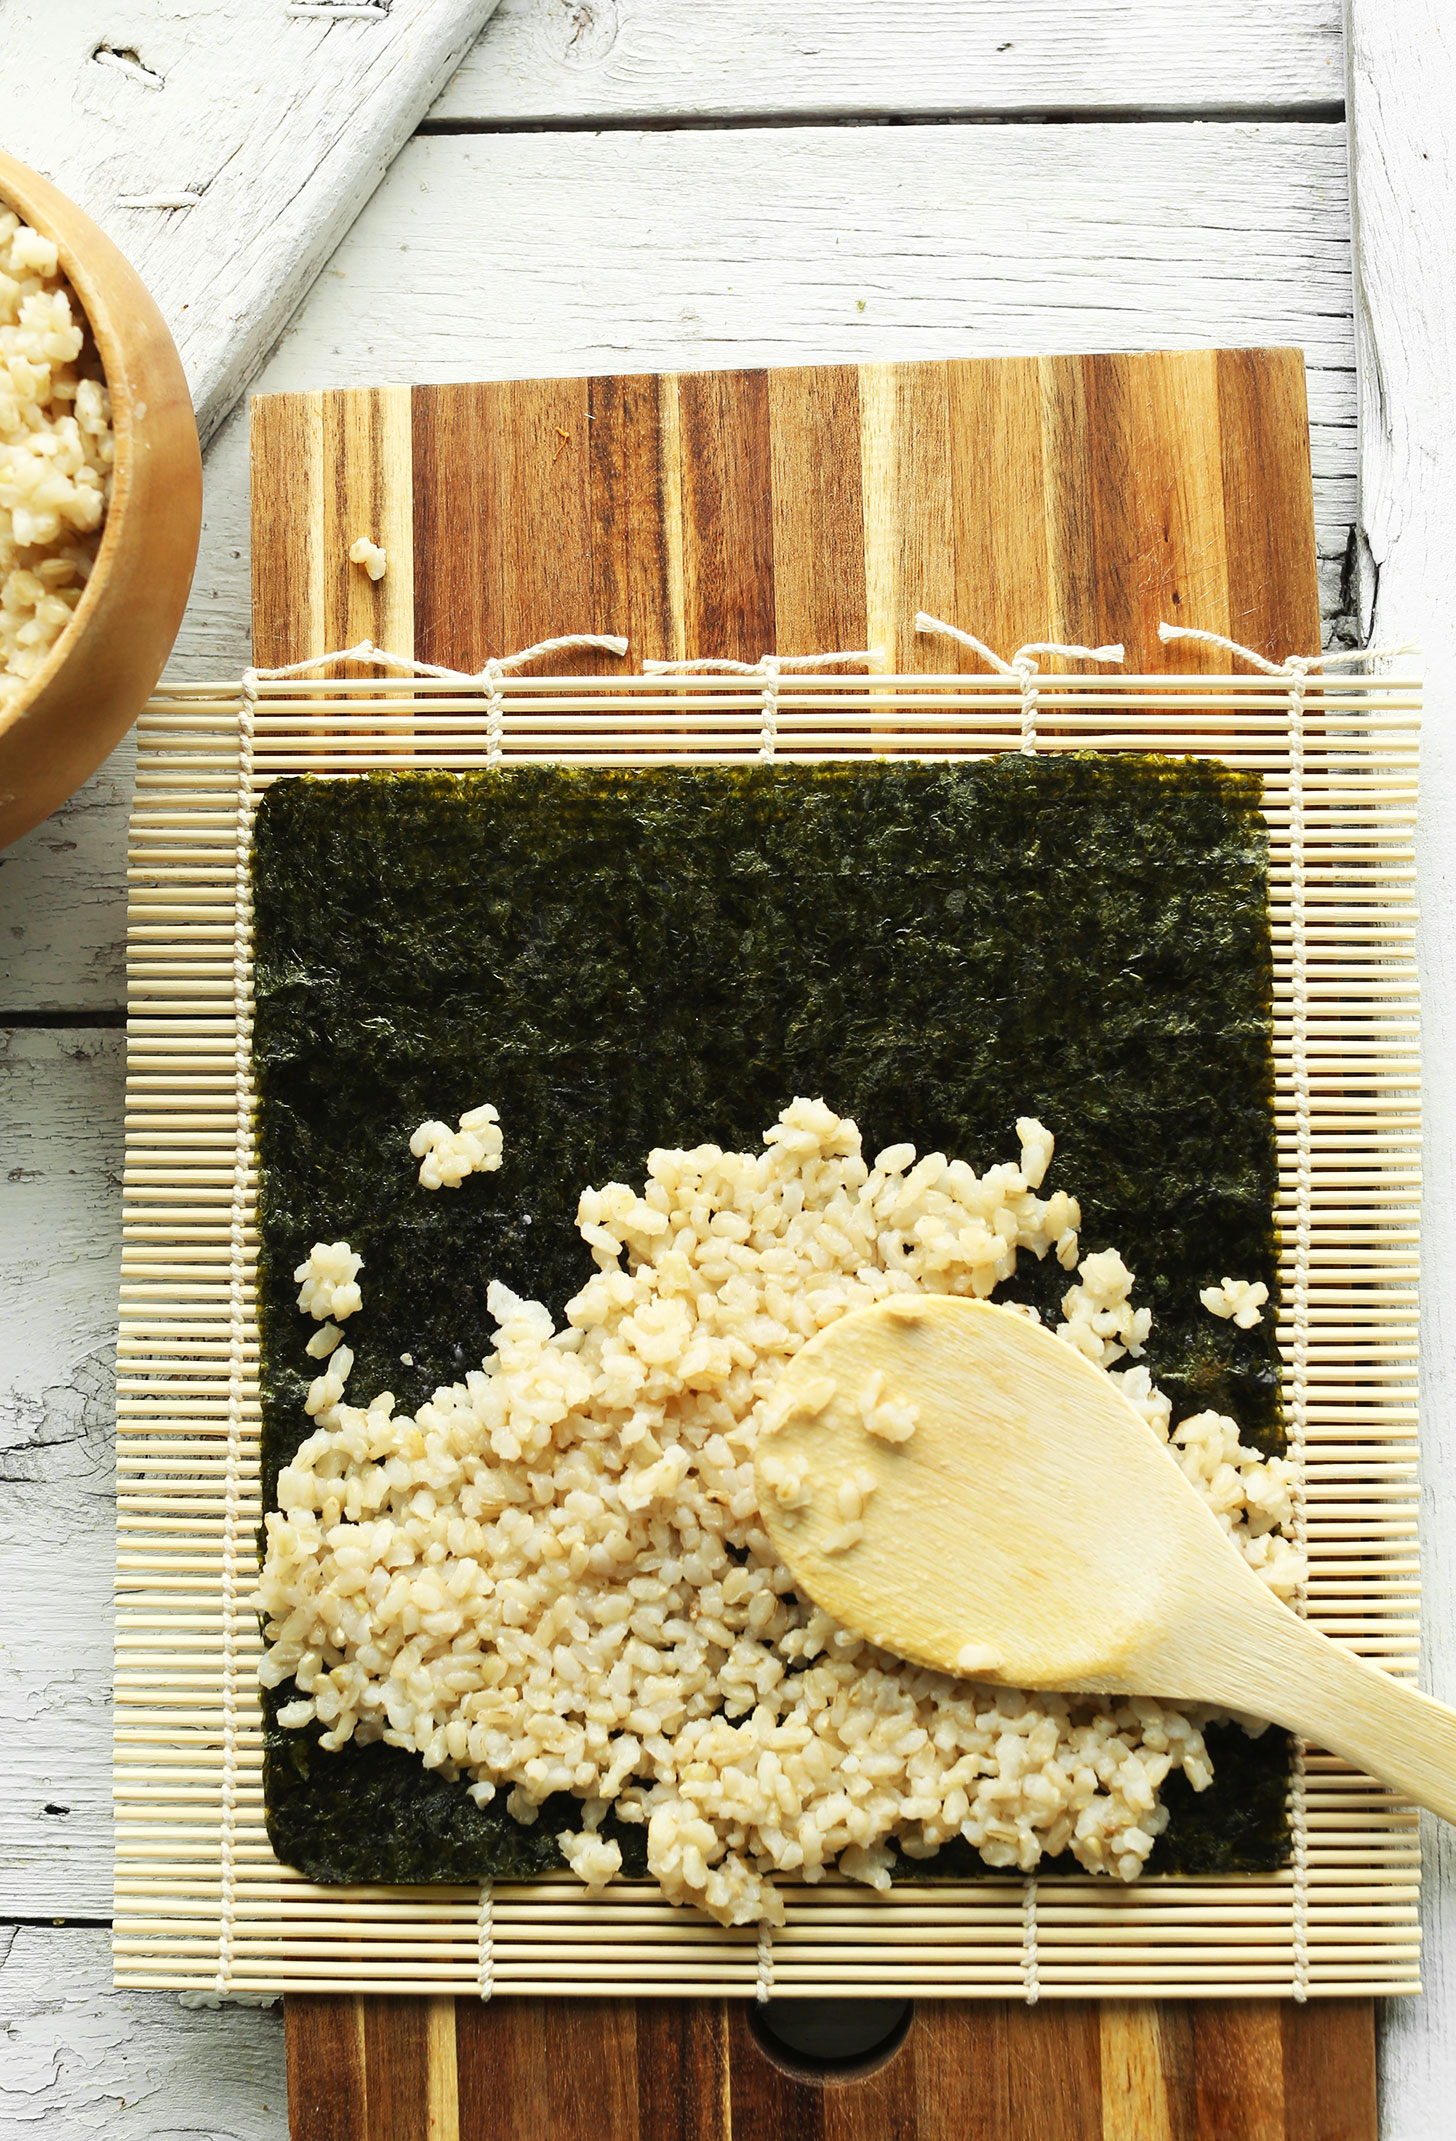 Spreading rice onto a sheet of nori for making homemade vegan sushi